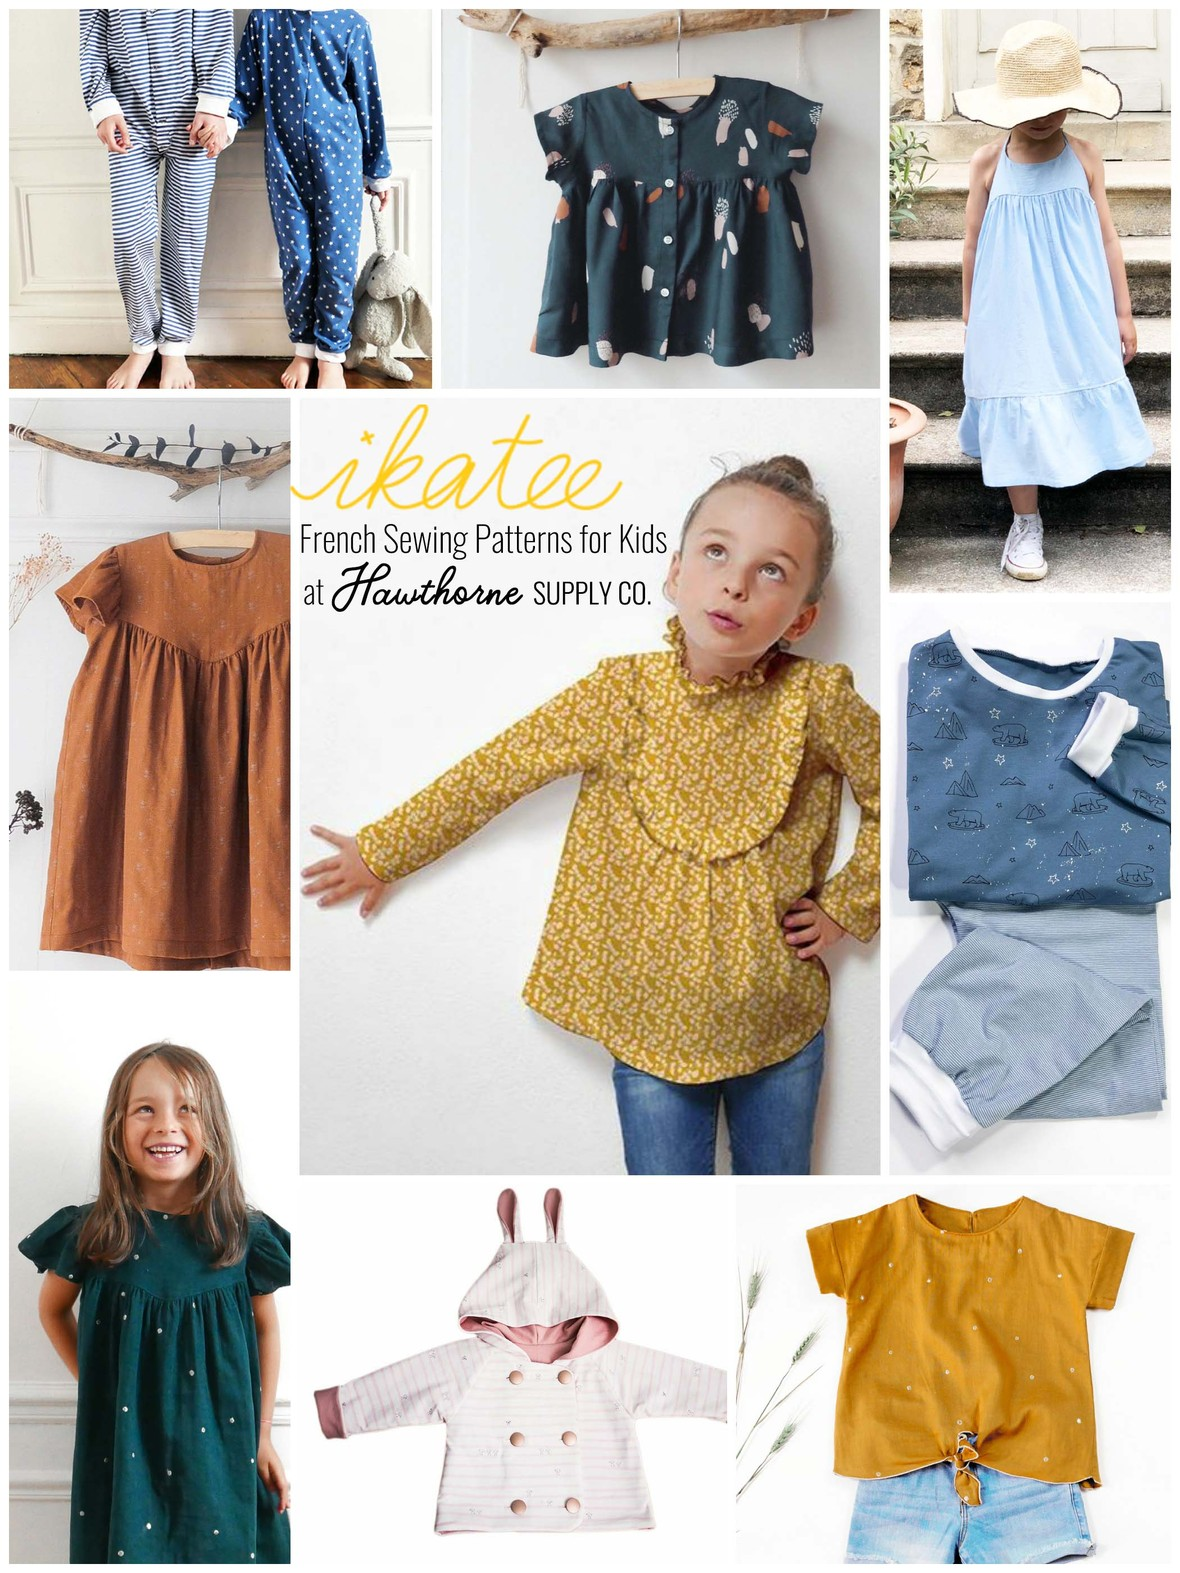 Ikatee Sewing Patterns for Kids at Hawthorne Supply Co